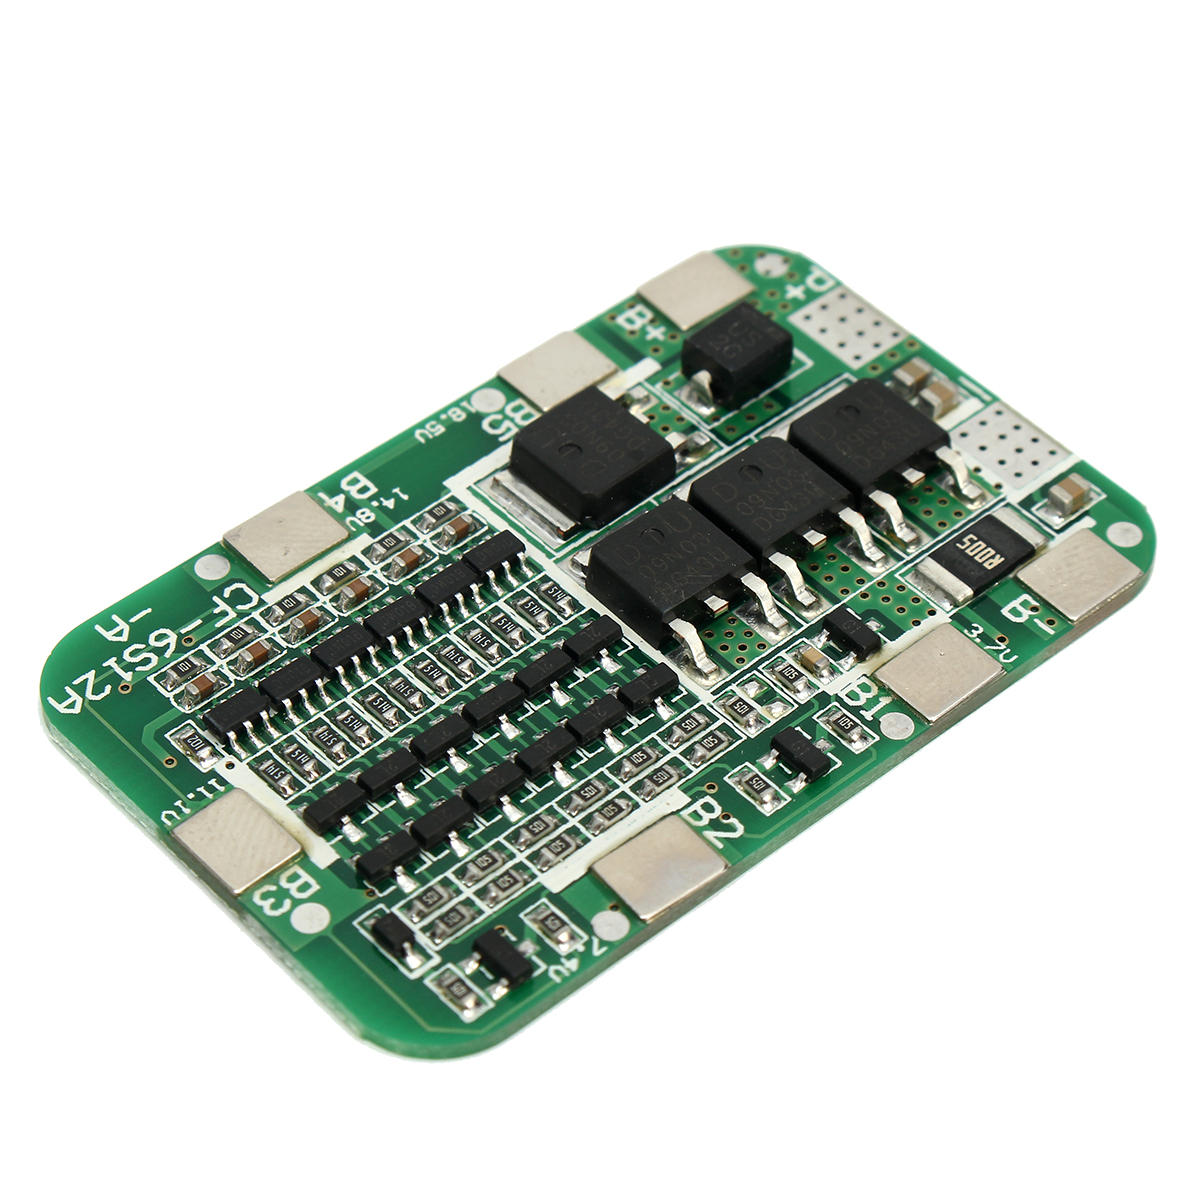 6S 15A Li-ion Lithium Battery 18650 Board Charger PCB BMS Protection Board 24V